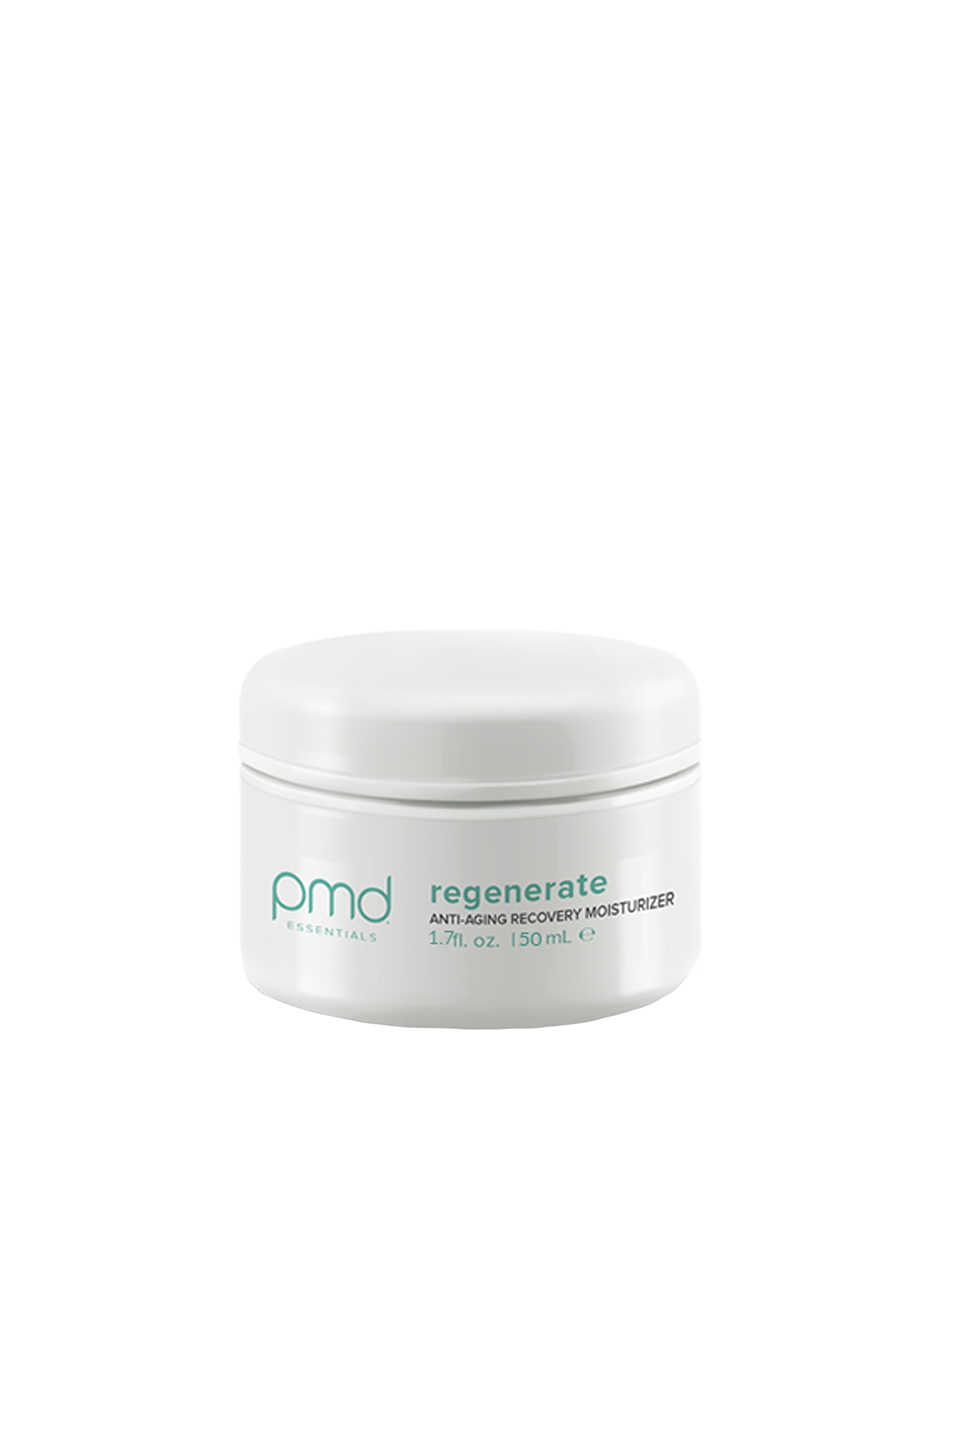 PMD Beauty Regenerate Anti-Aging Recovery Moisturizer in